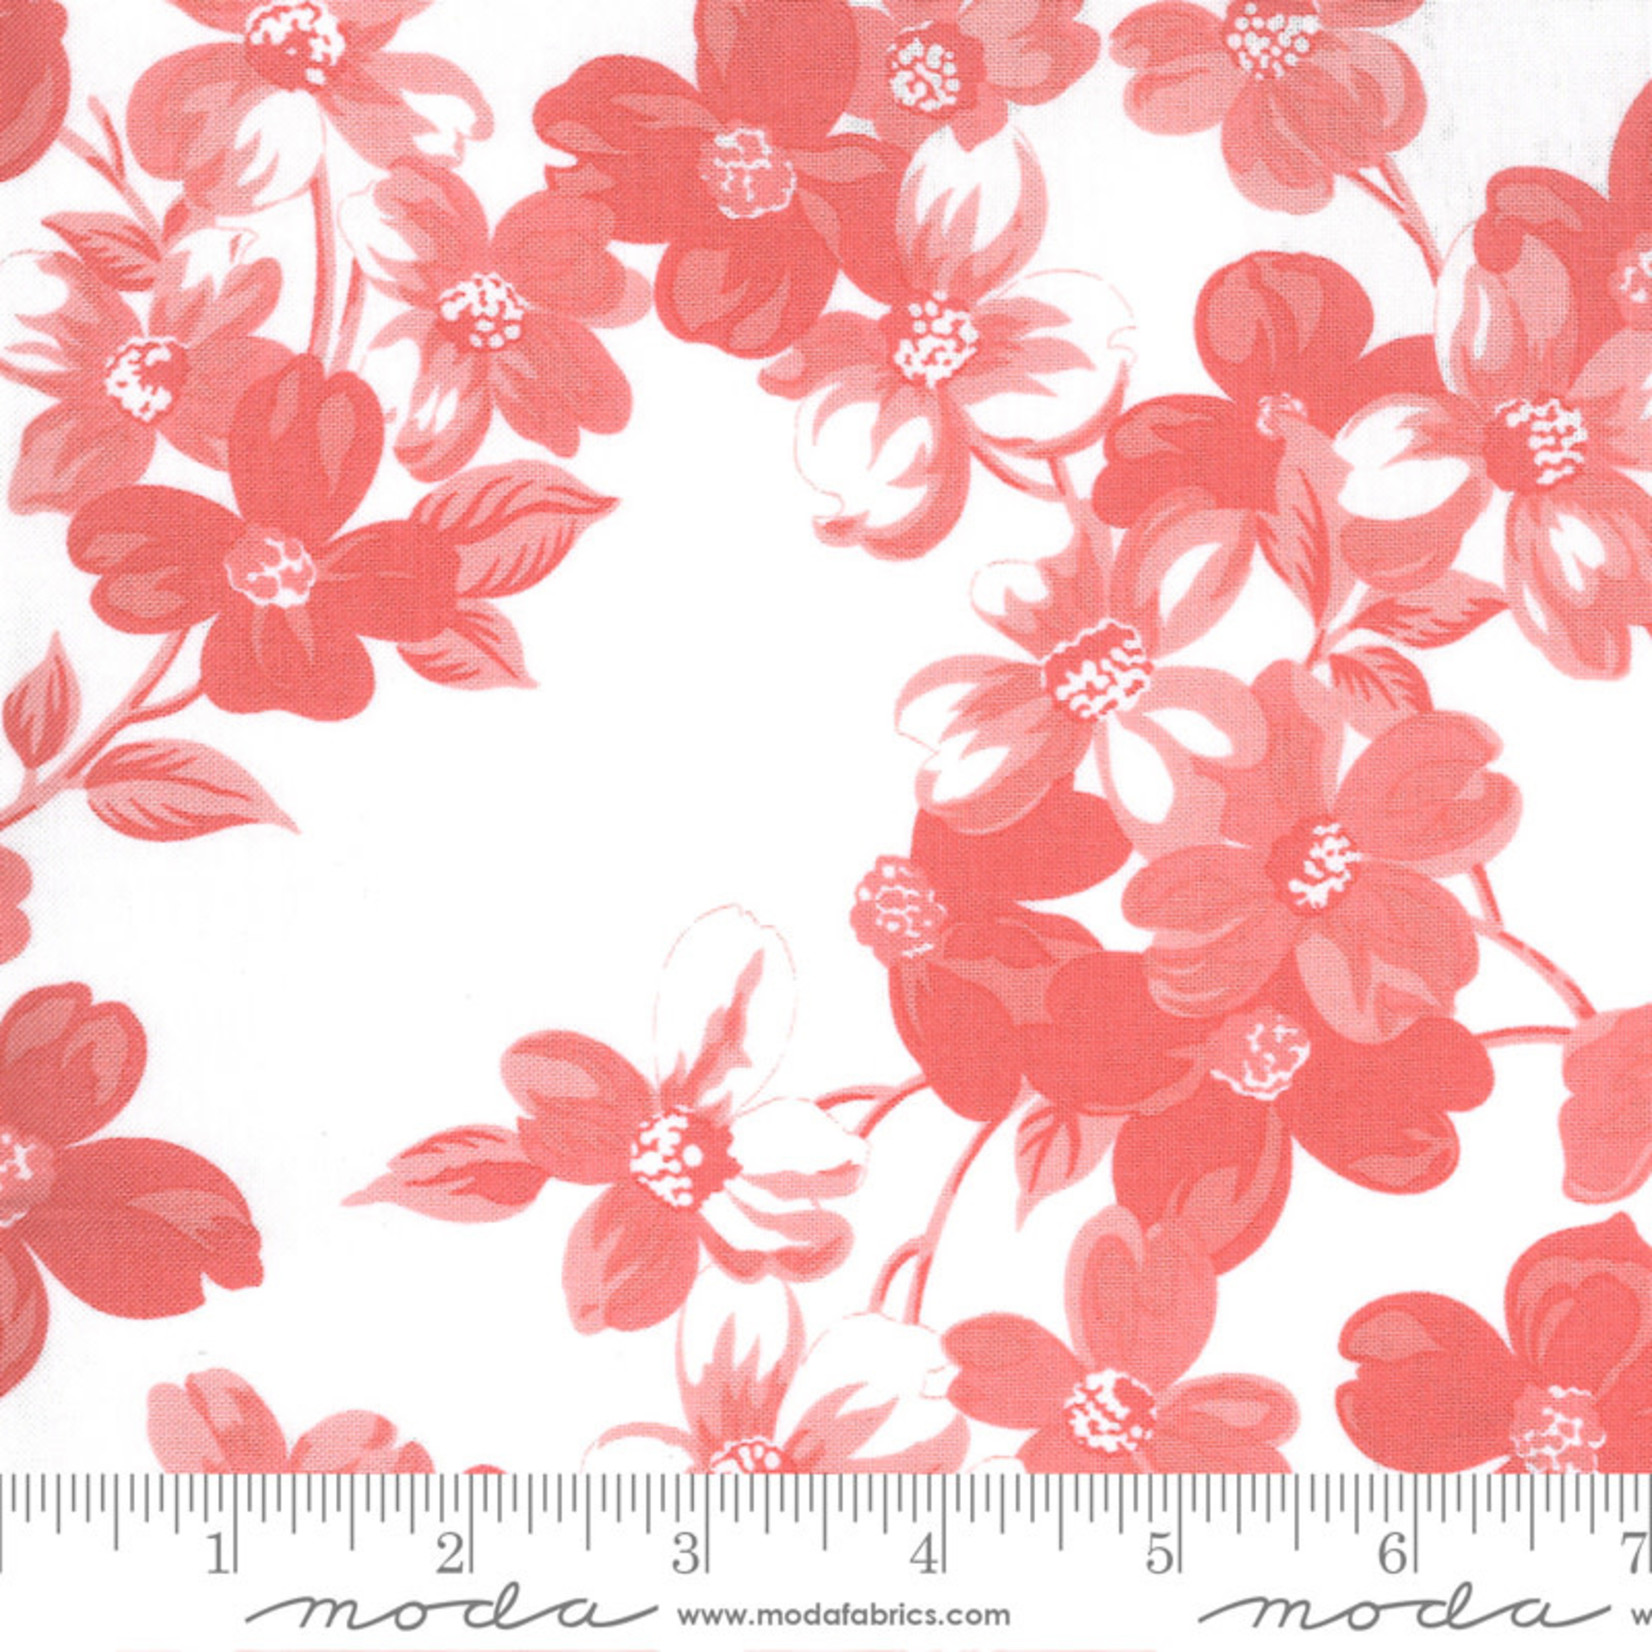 Bonnie & Camille Sunday Stroll, Full Bloom, White Pink 55220 23 $0.20 per cm or $20/m